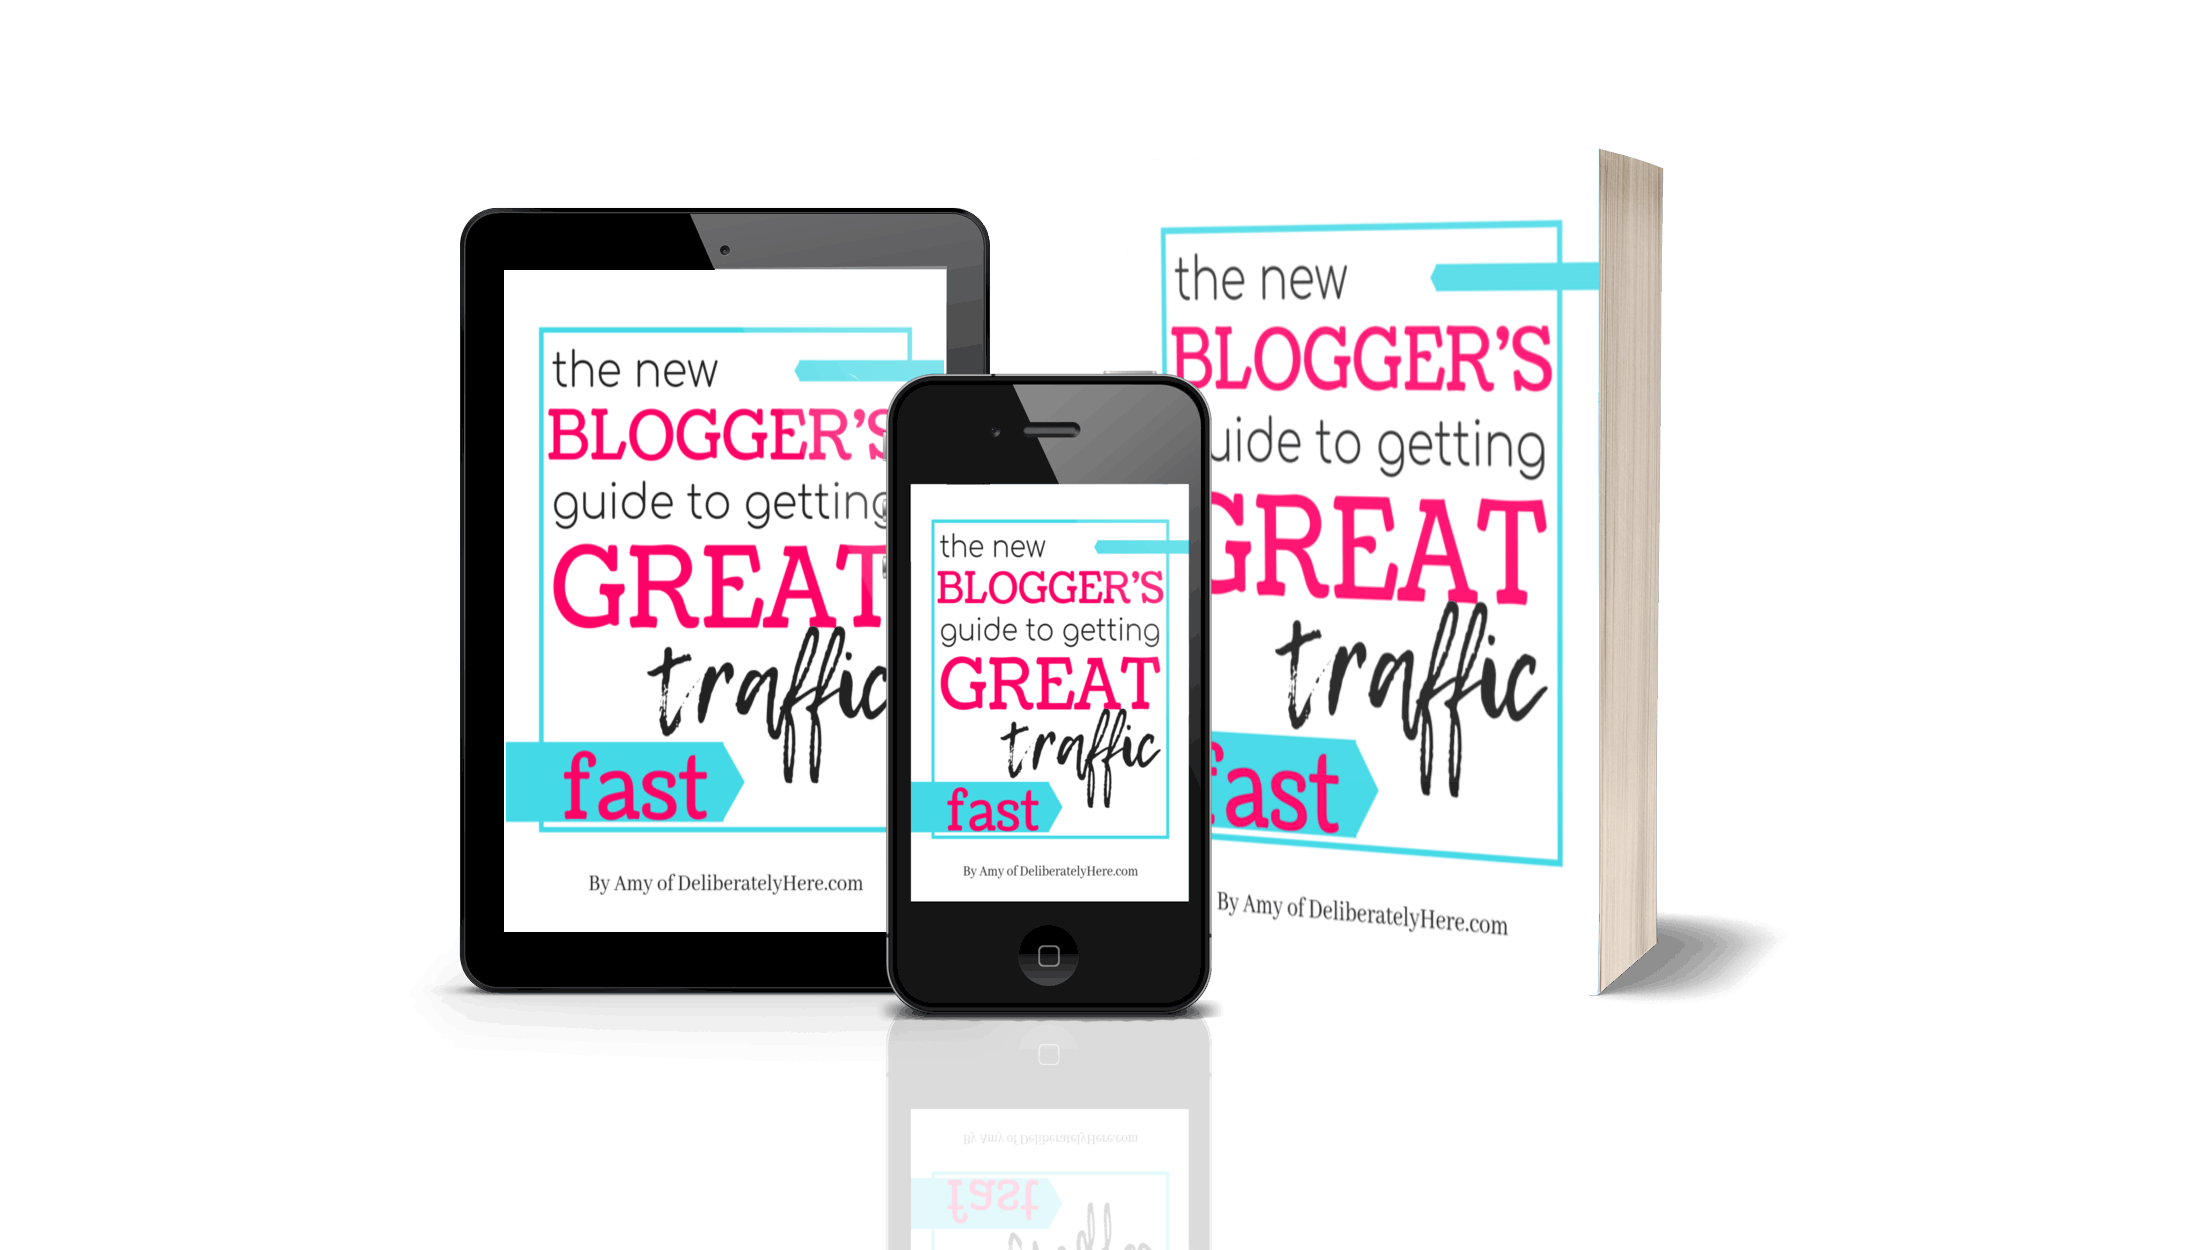 The new blogger's guide to getting great traffic fast